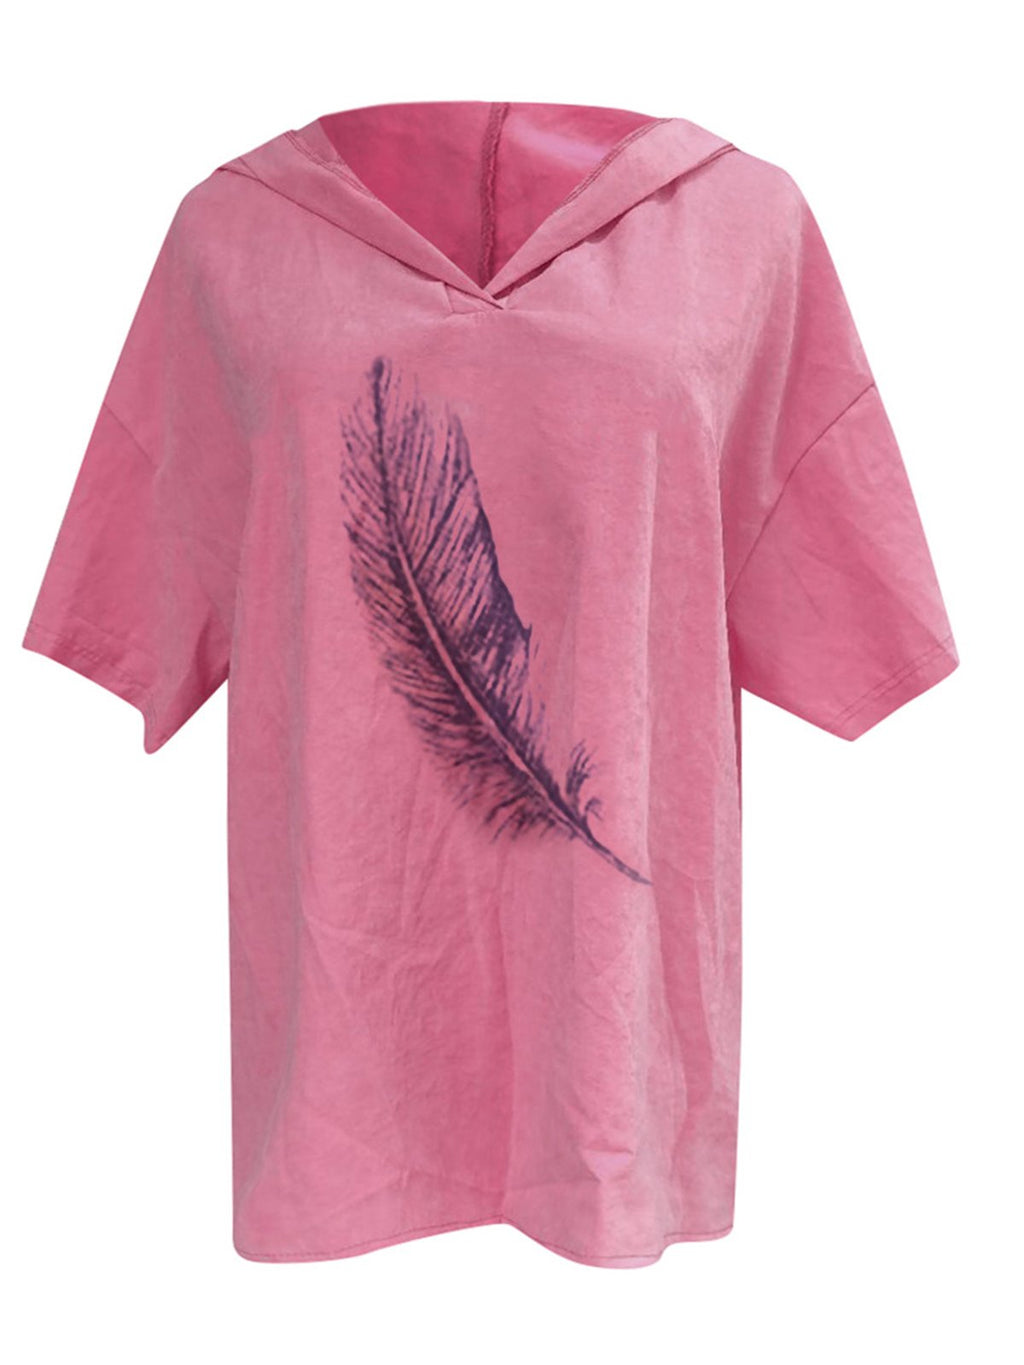 Feather Print Hoodie Short Sleeve Plus Size Top